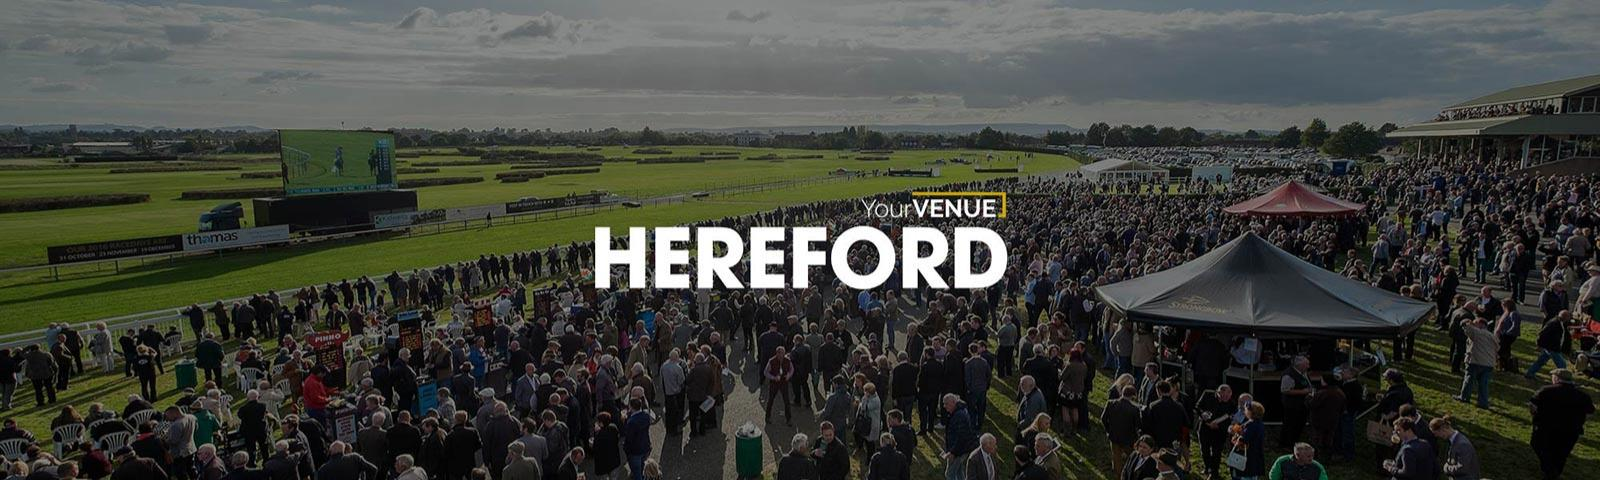 Crowds at a raceday at Hereford Racecourse.